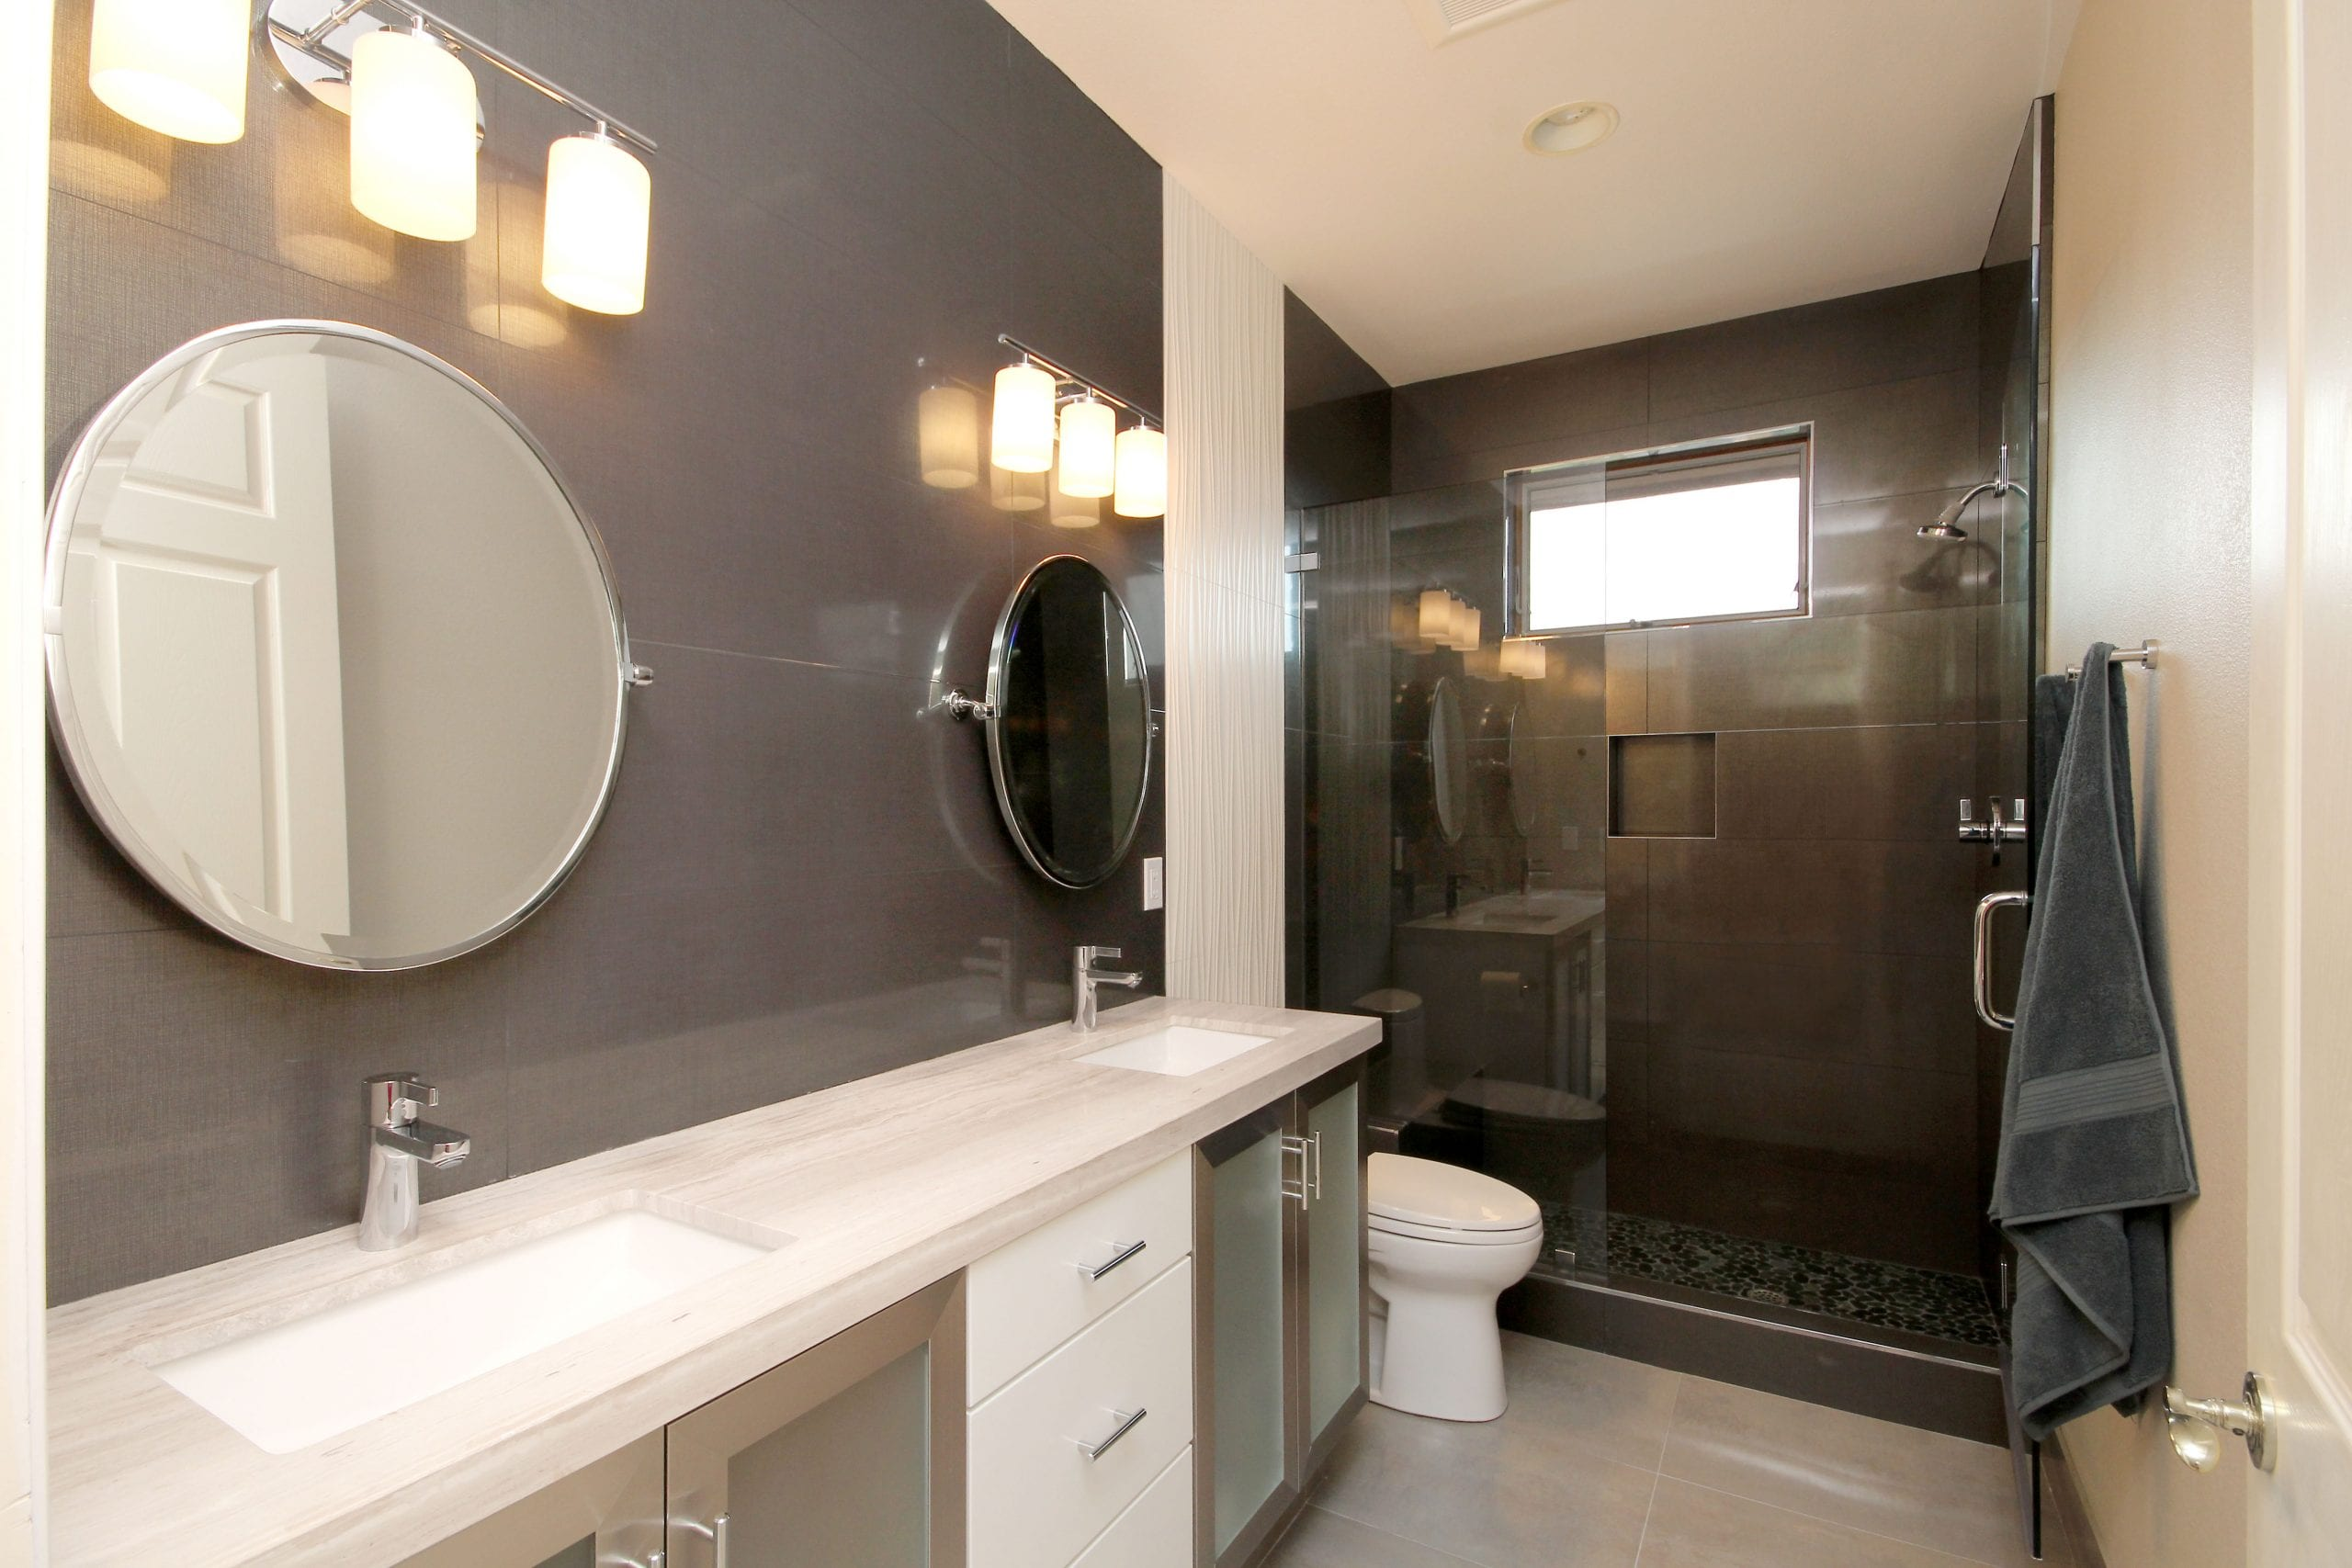 Finding Nemo inspired bathroom with two round mirrors and a black & white contrast